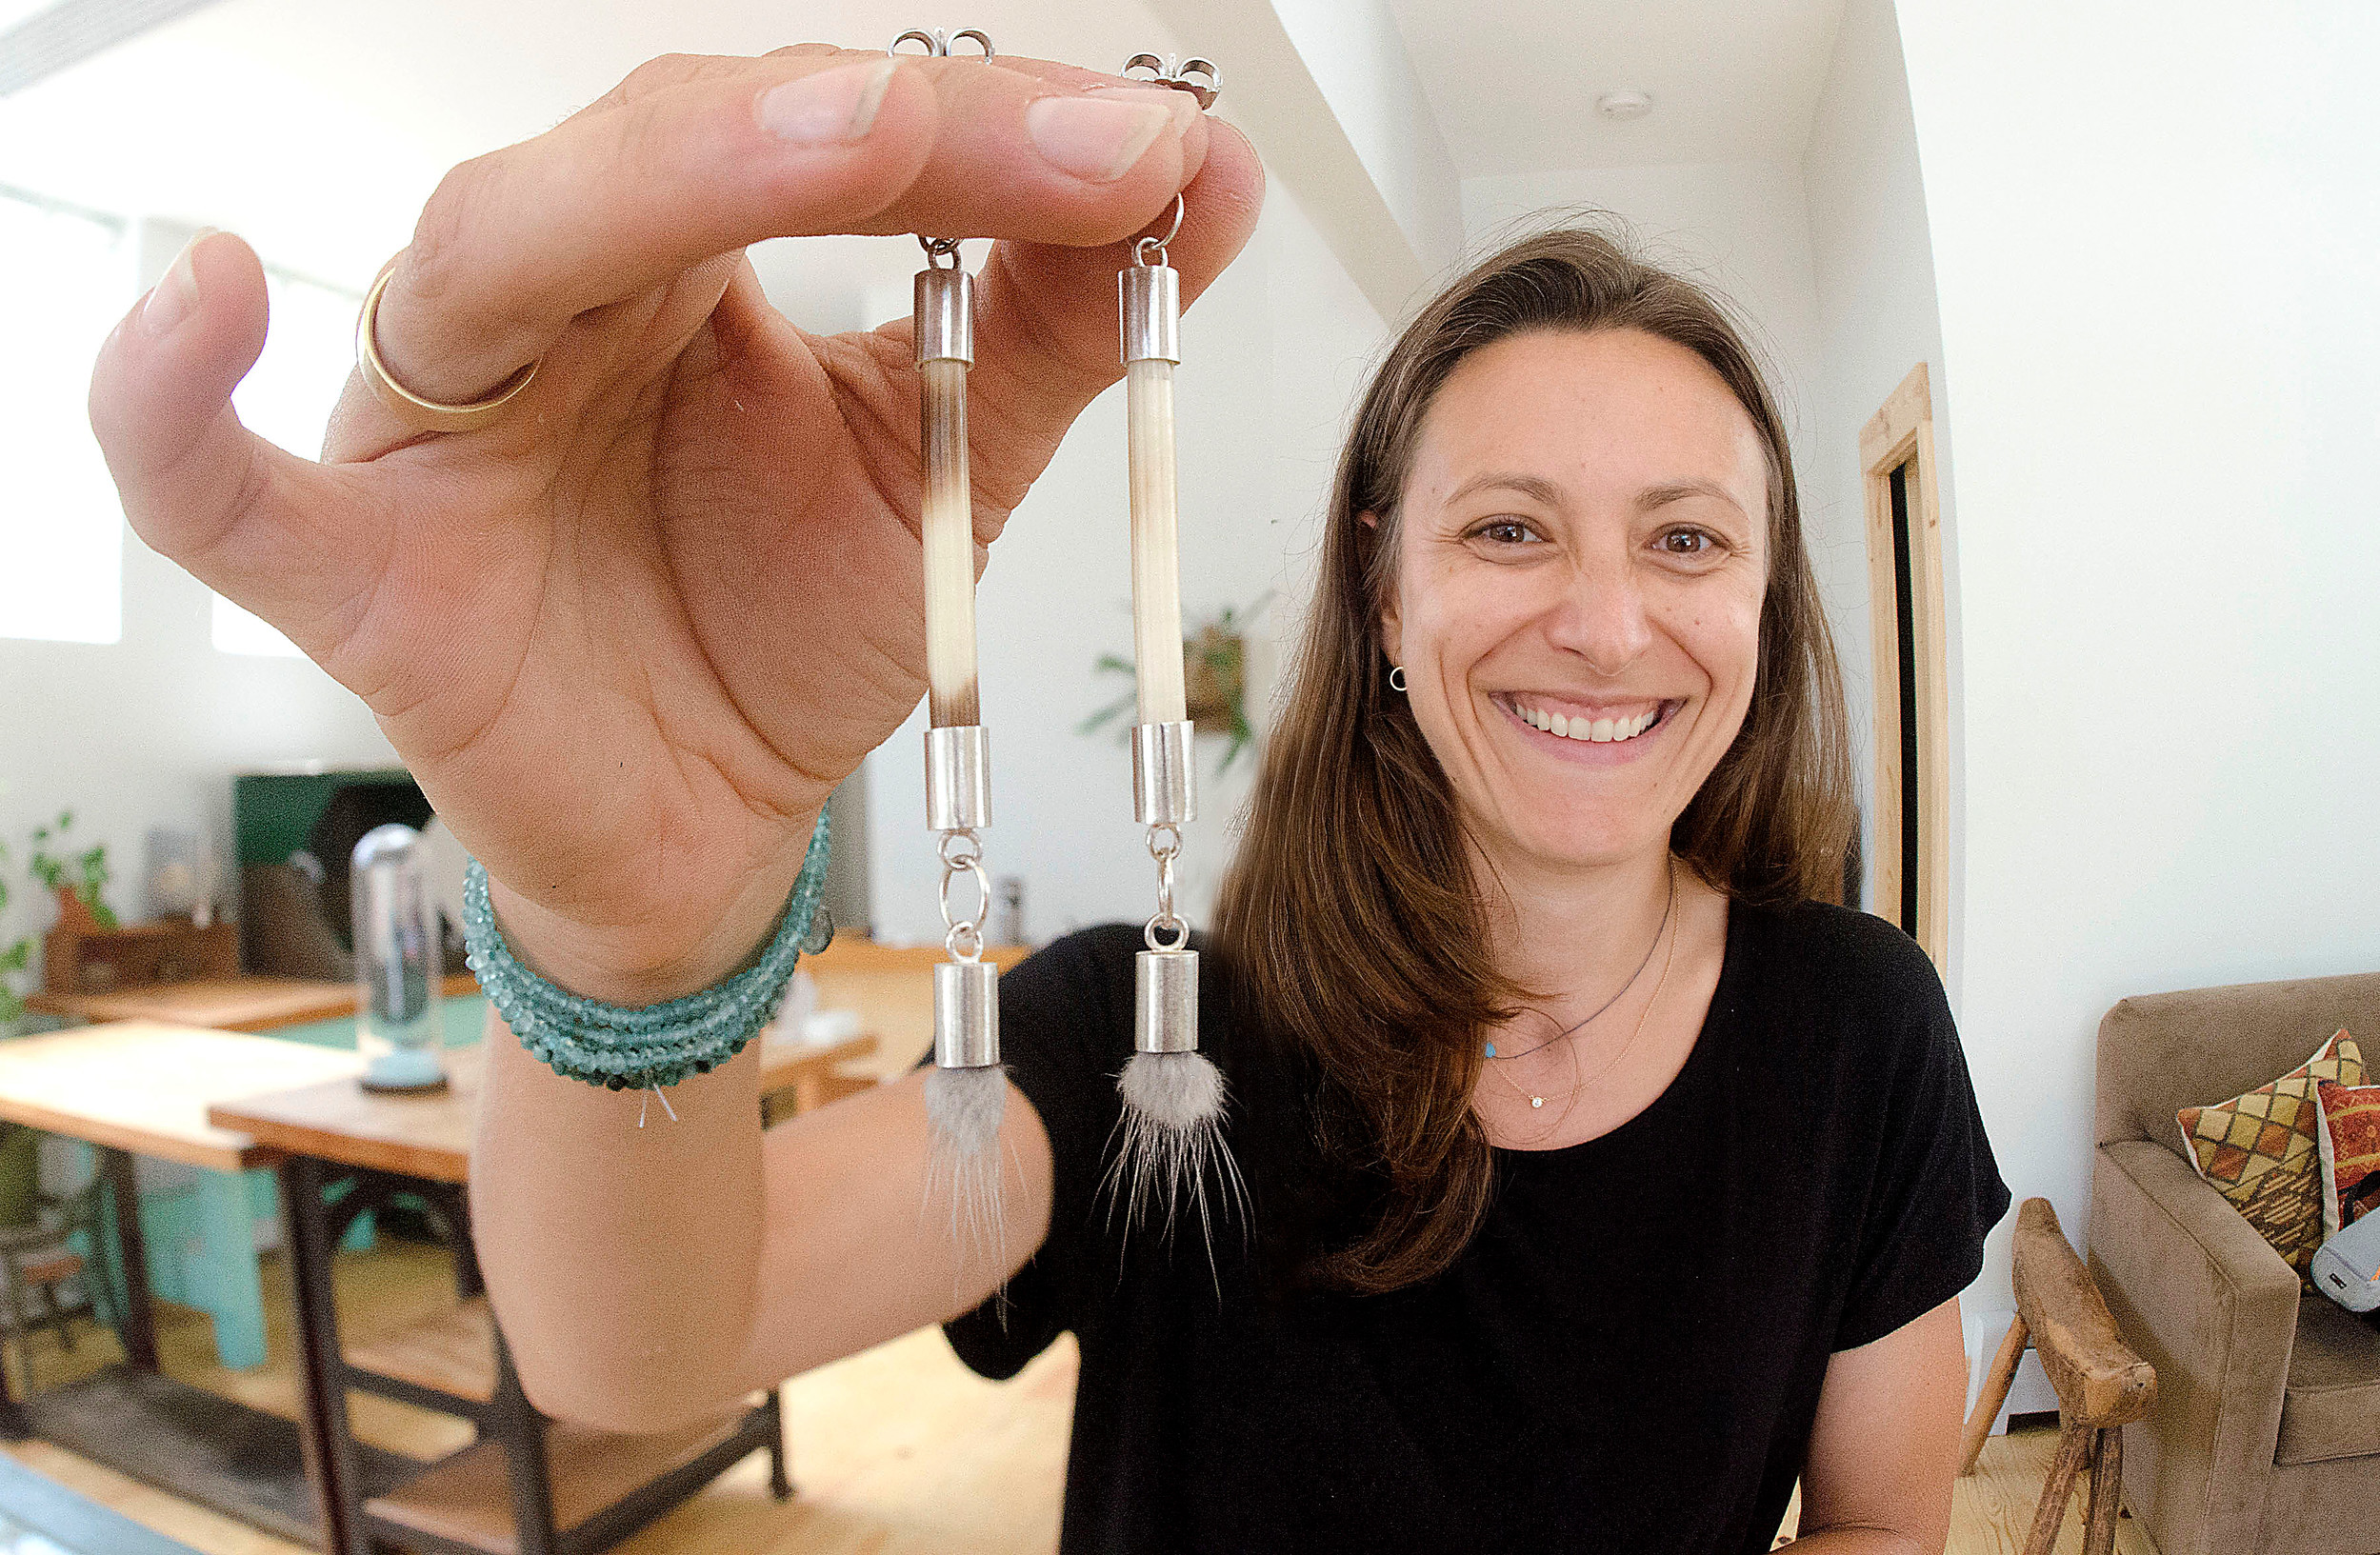 Artist and jeweler Kendall Reiss shows off a pair of earrings she crafted from porcupine quills and mink fur.